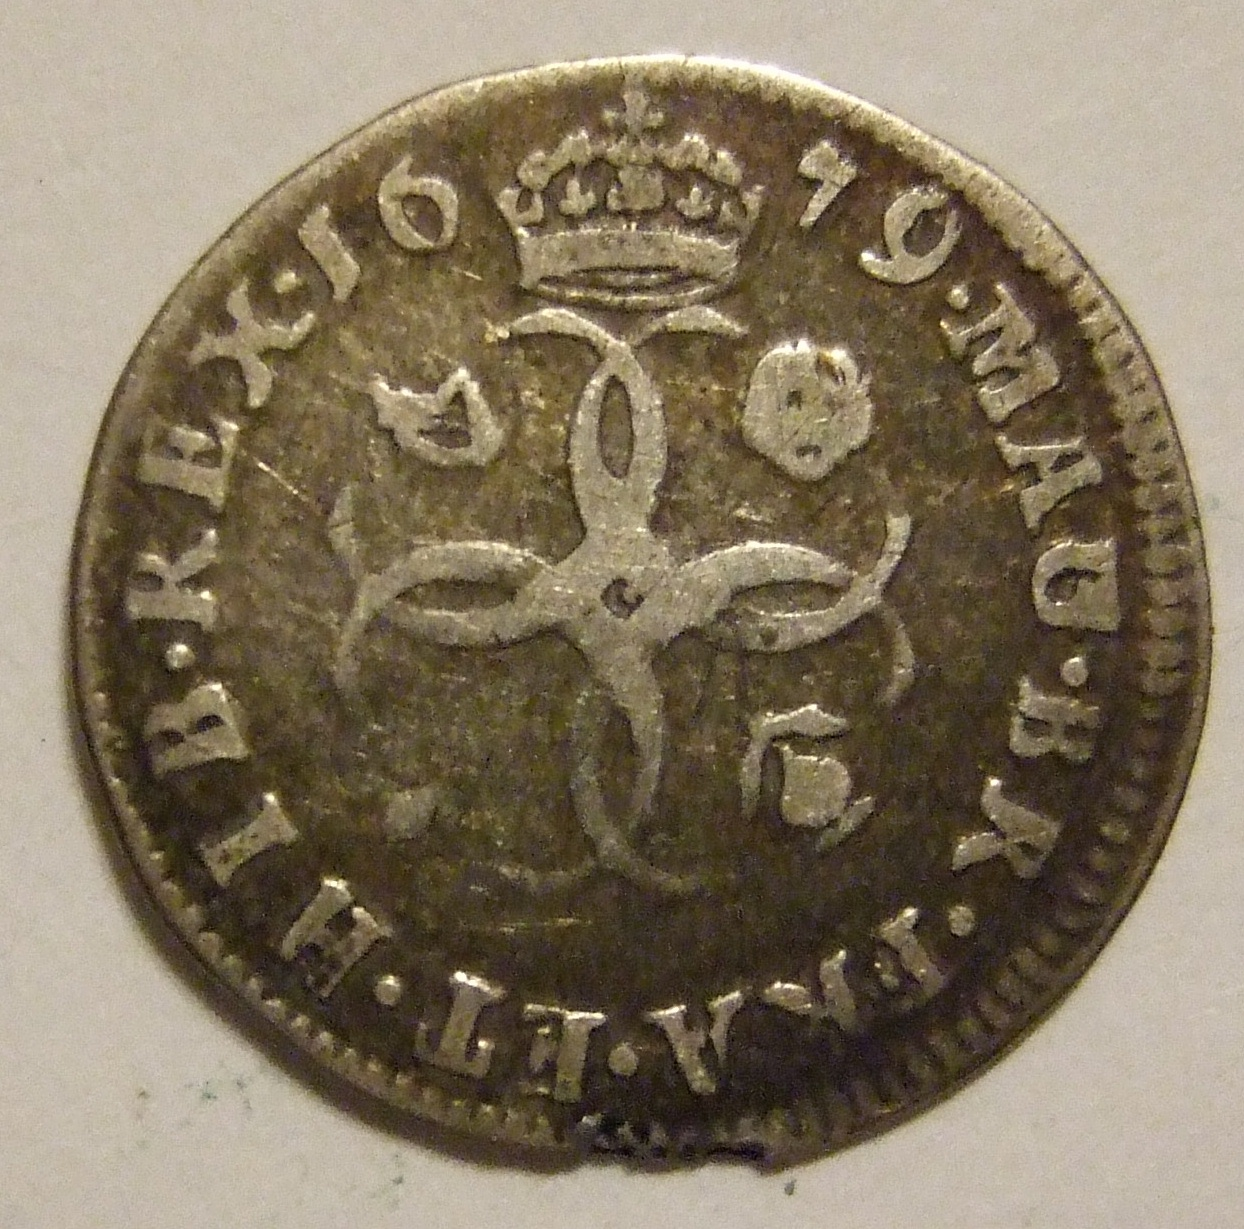 File:GREAT BRITAIN, CHARLES II 1679 -MAUNDY FOURPENCE a - Flickr -  woody1778a